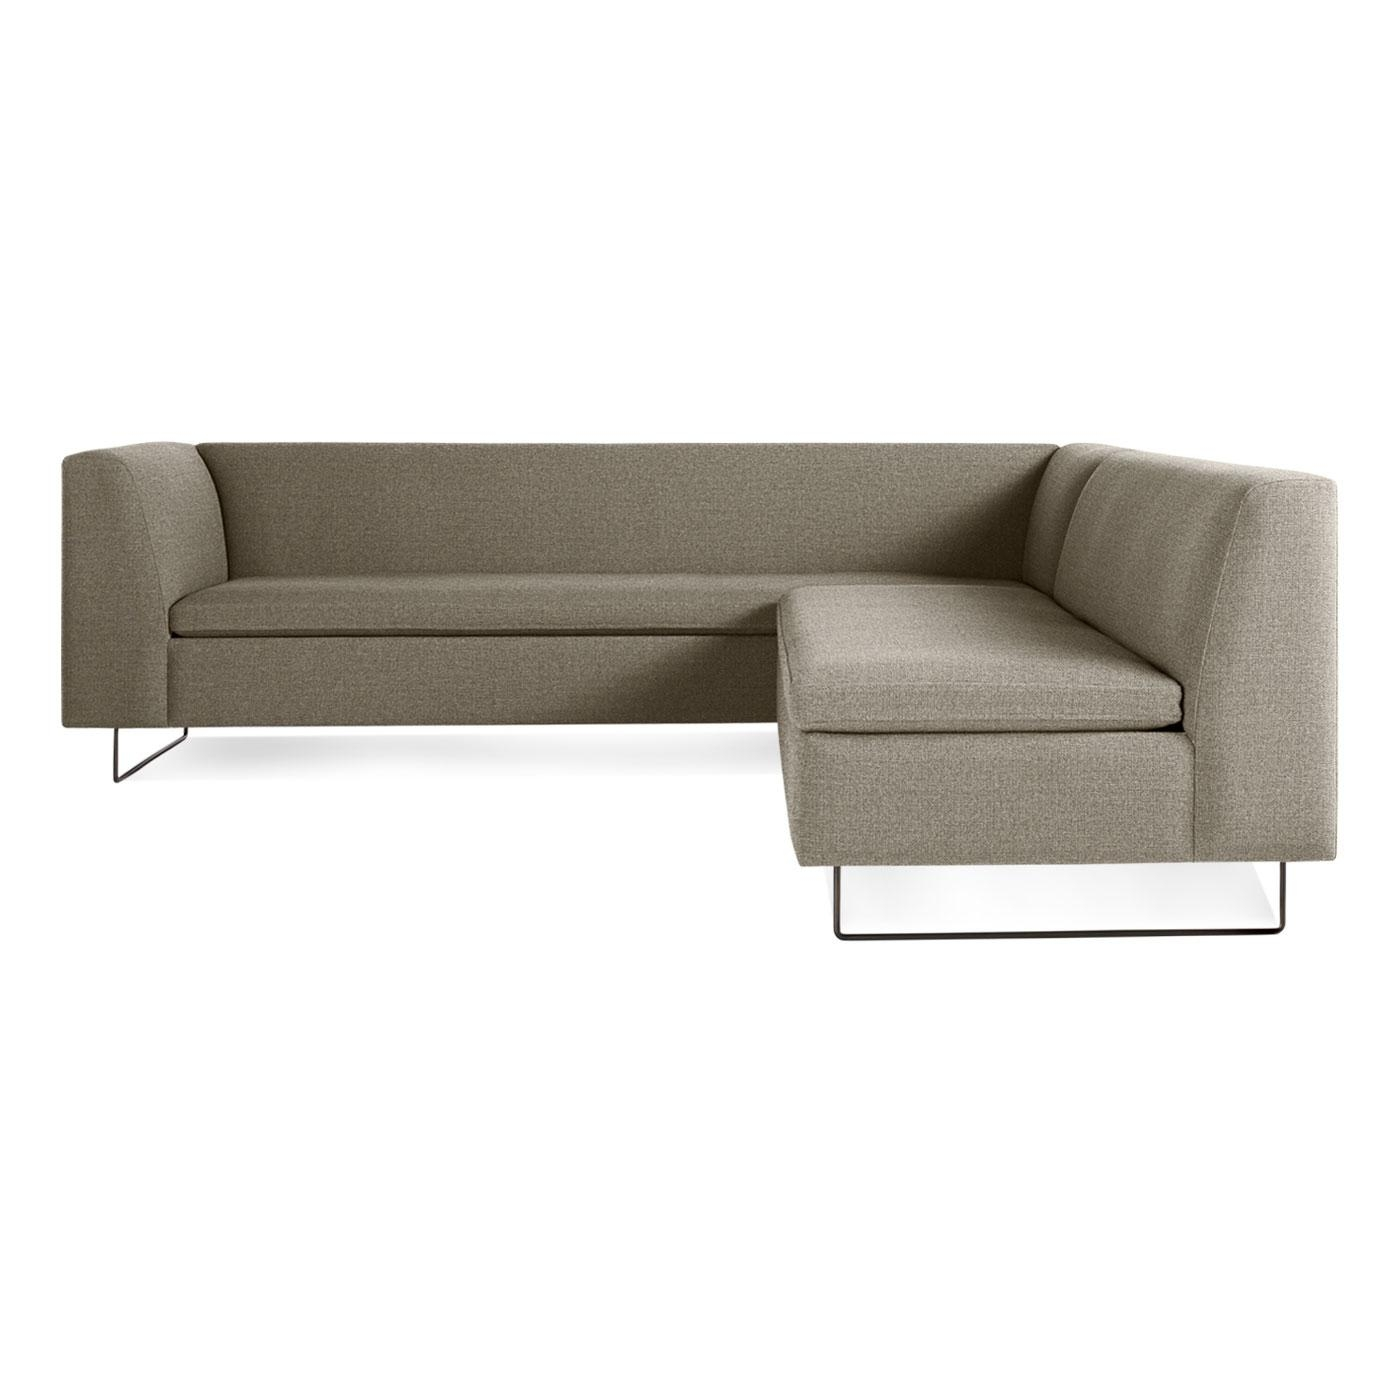 Featured Image of Sleek Sectional Sofa